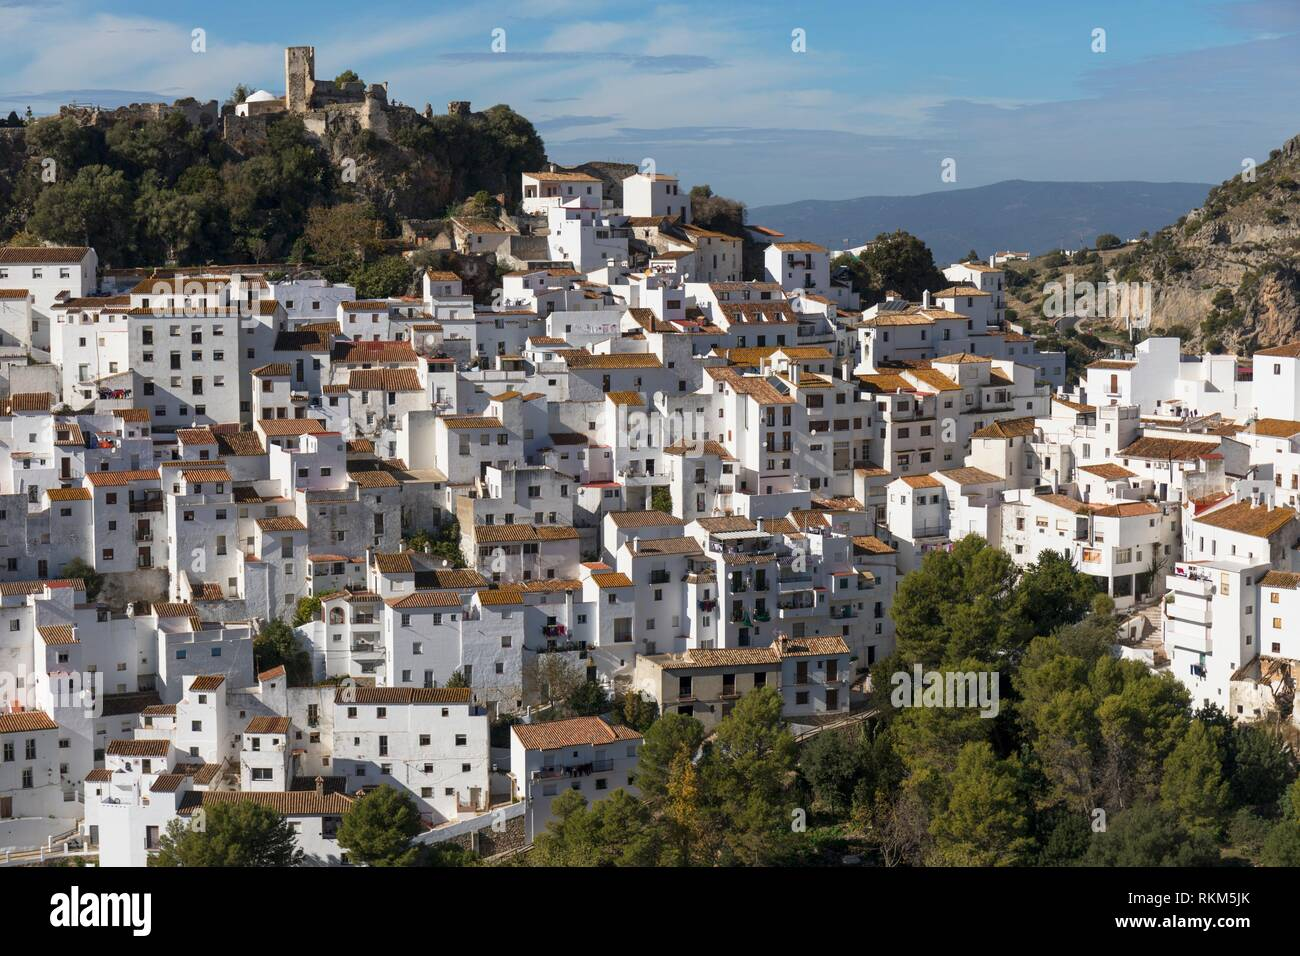 Casares, Malaga Province, Andalusia, southern Spain. Iconic white-washed mountain village. Popular inland excursion from the Costa del Sol. - Stock Image